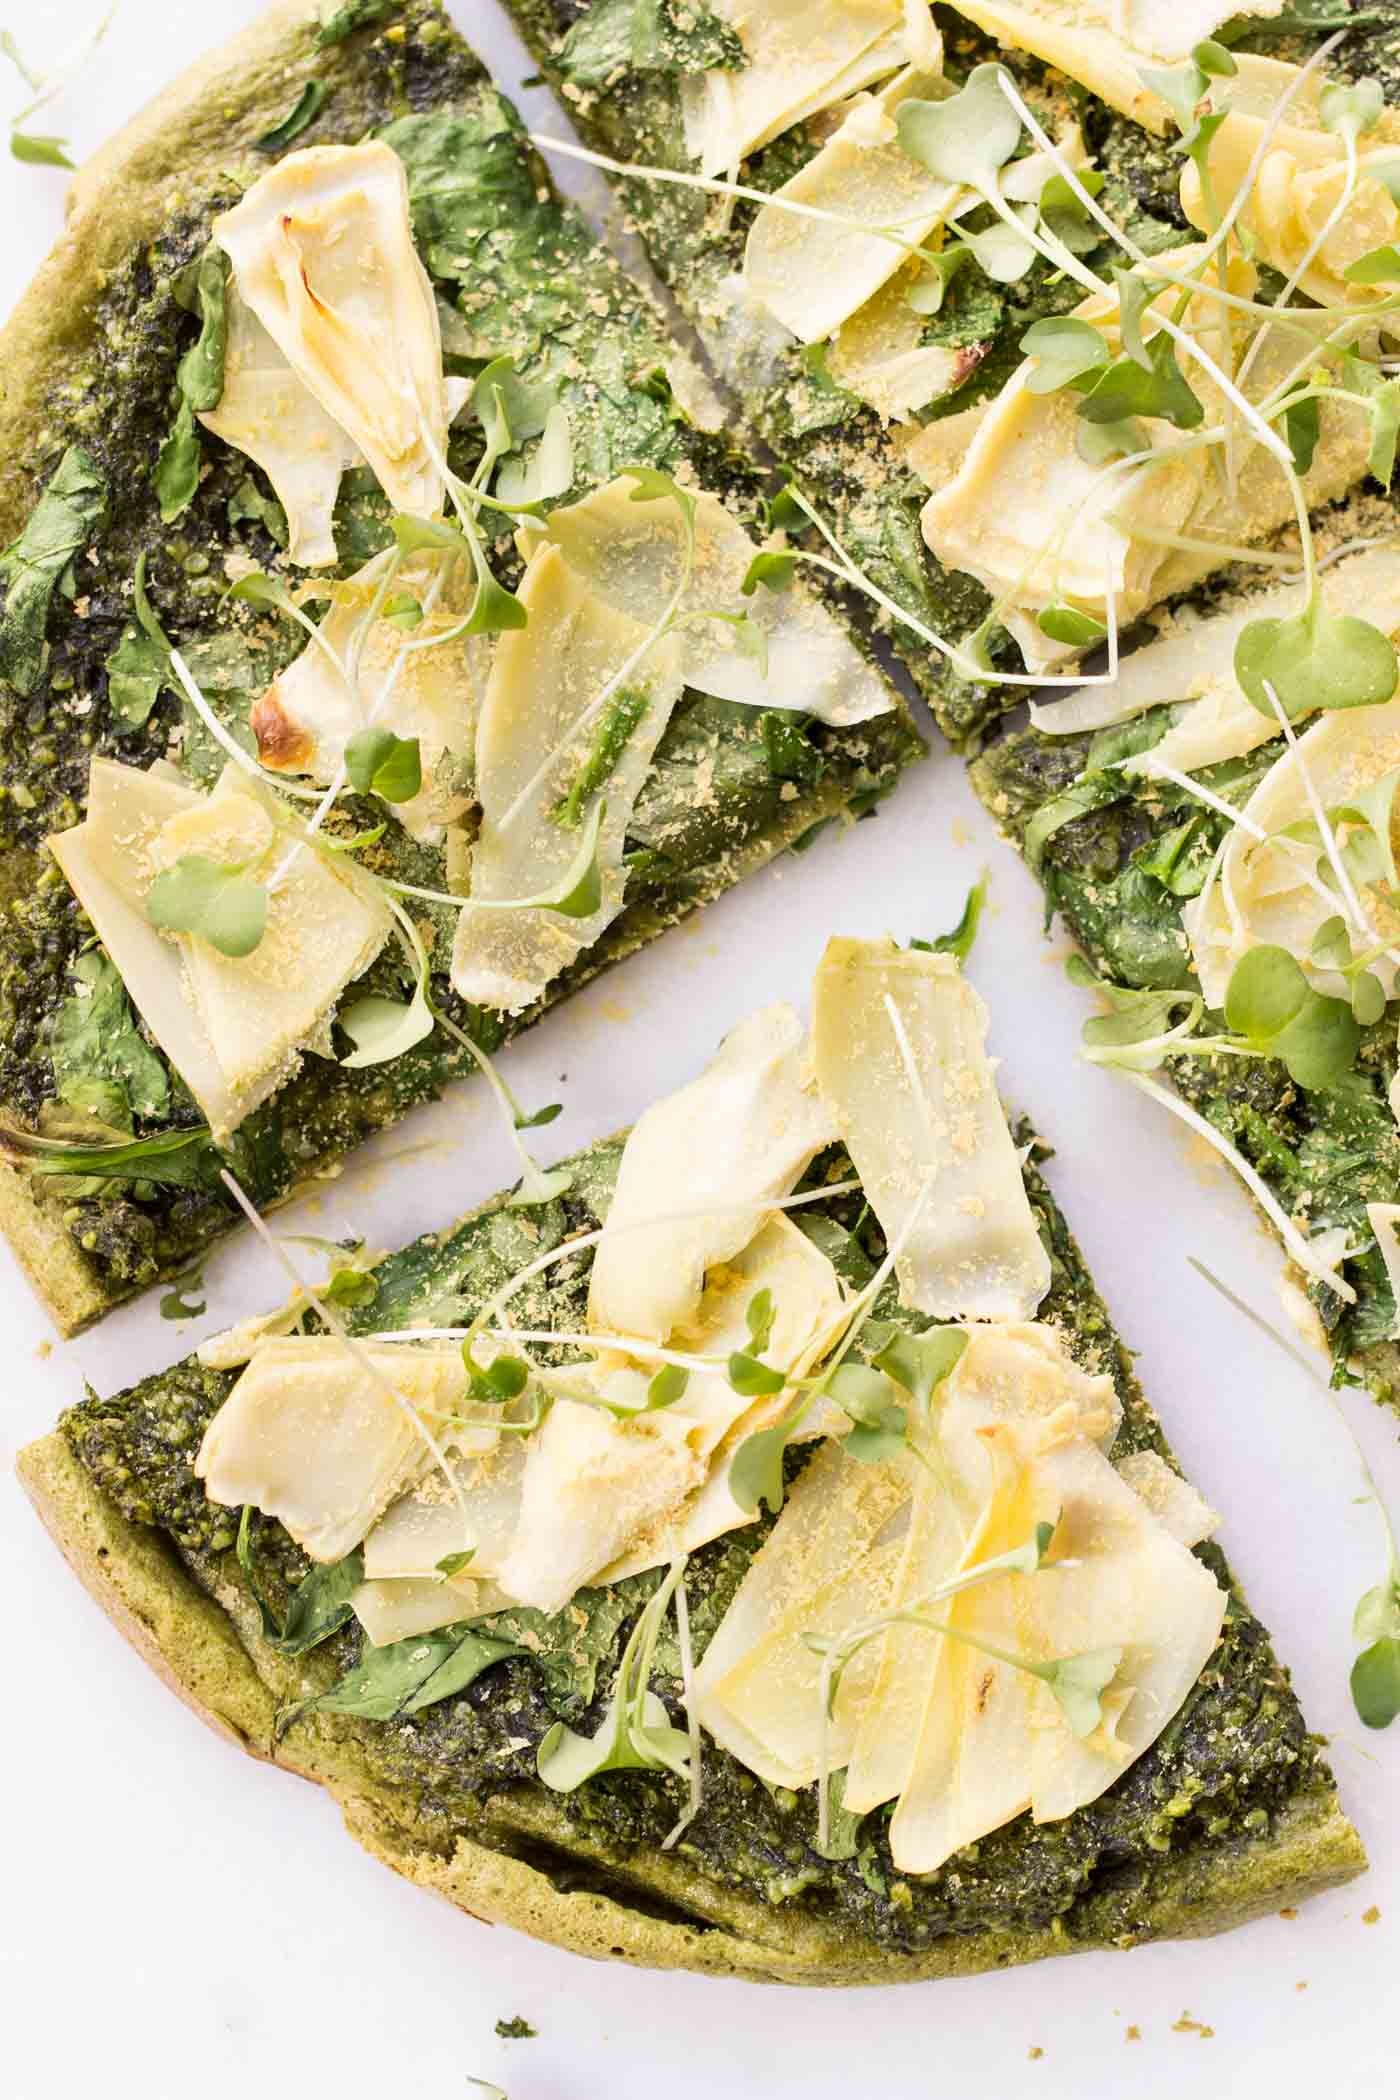 Spinach + Artichoke Quinoa Pizza -- a healthy, vegan pizza that's packed with tons of green veggies!